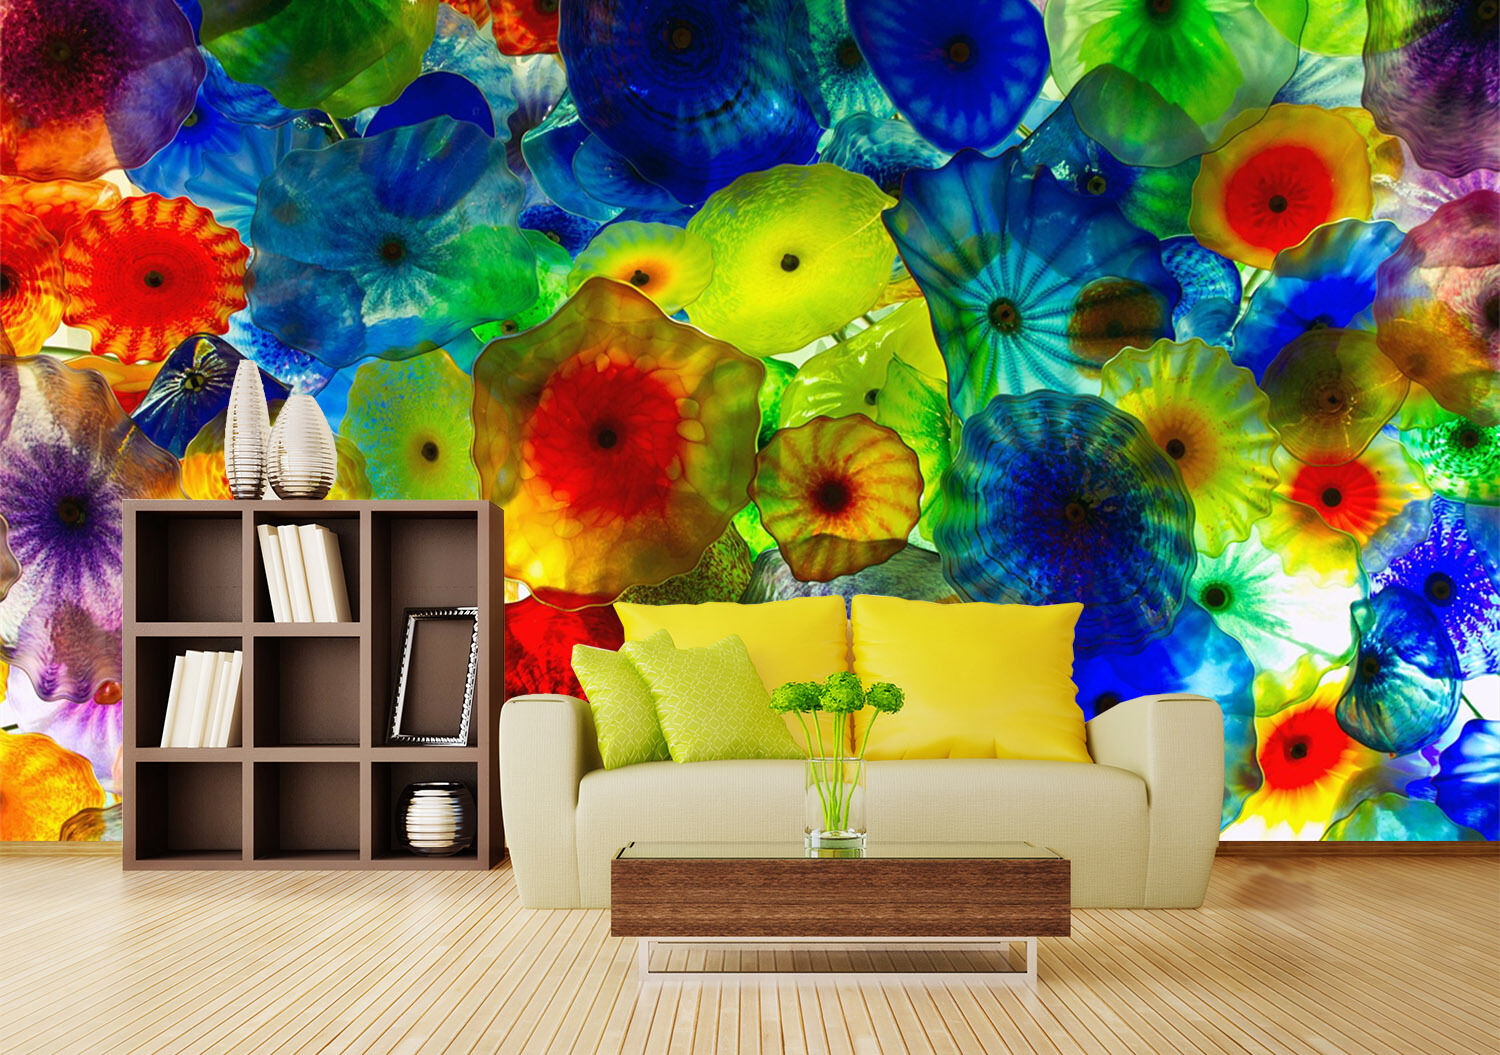 3D color Painted Painted Painted petal 765 Wall Paper Print Decal Wall Deco Indoor wall Mural f08fe9